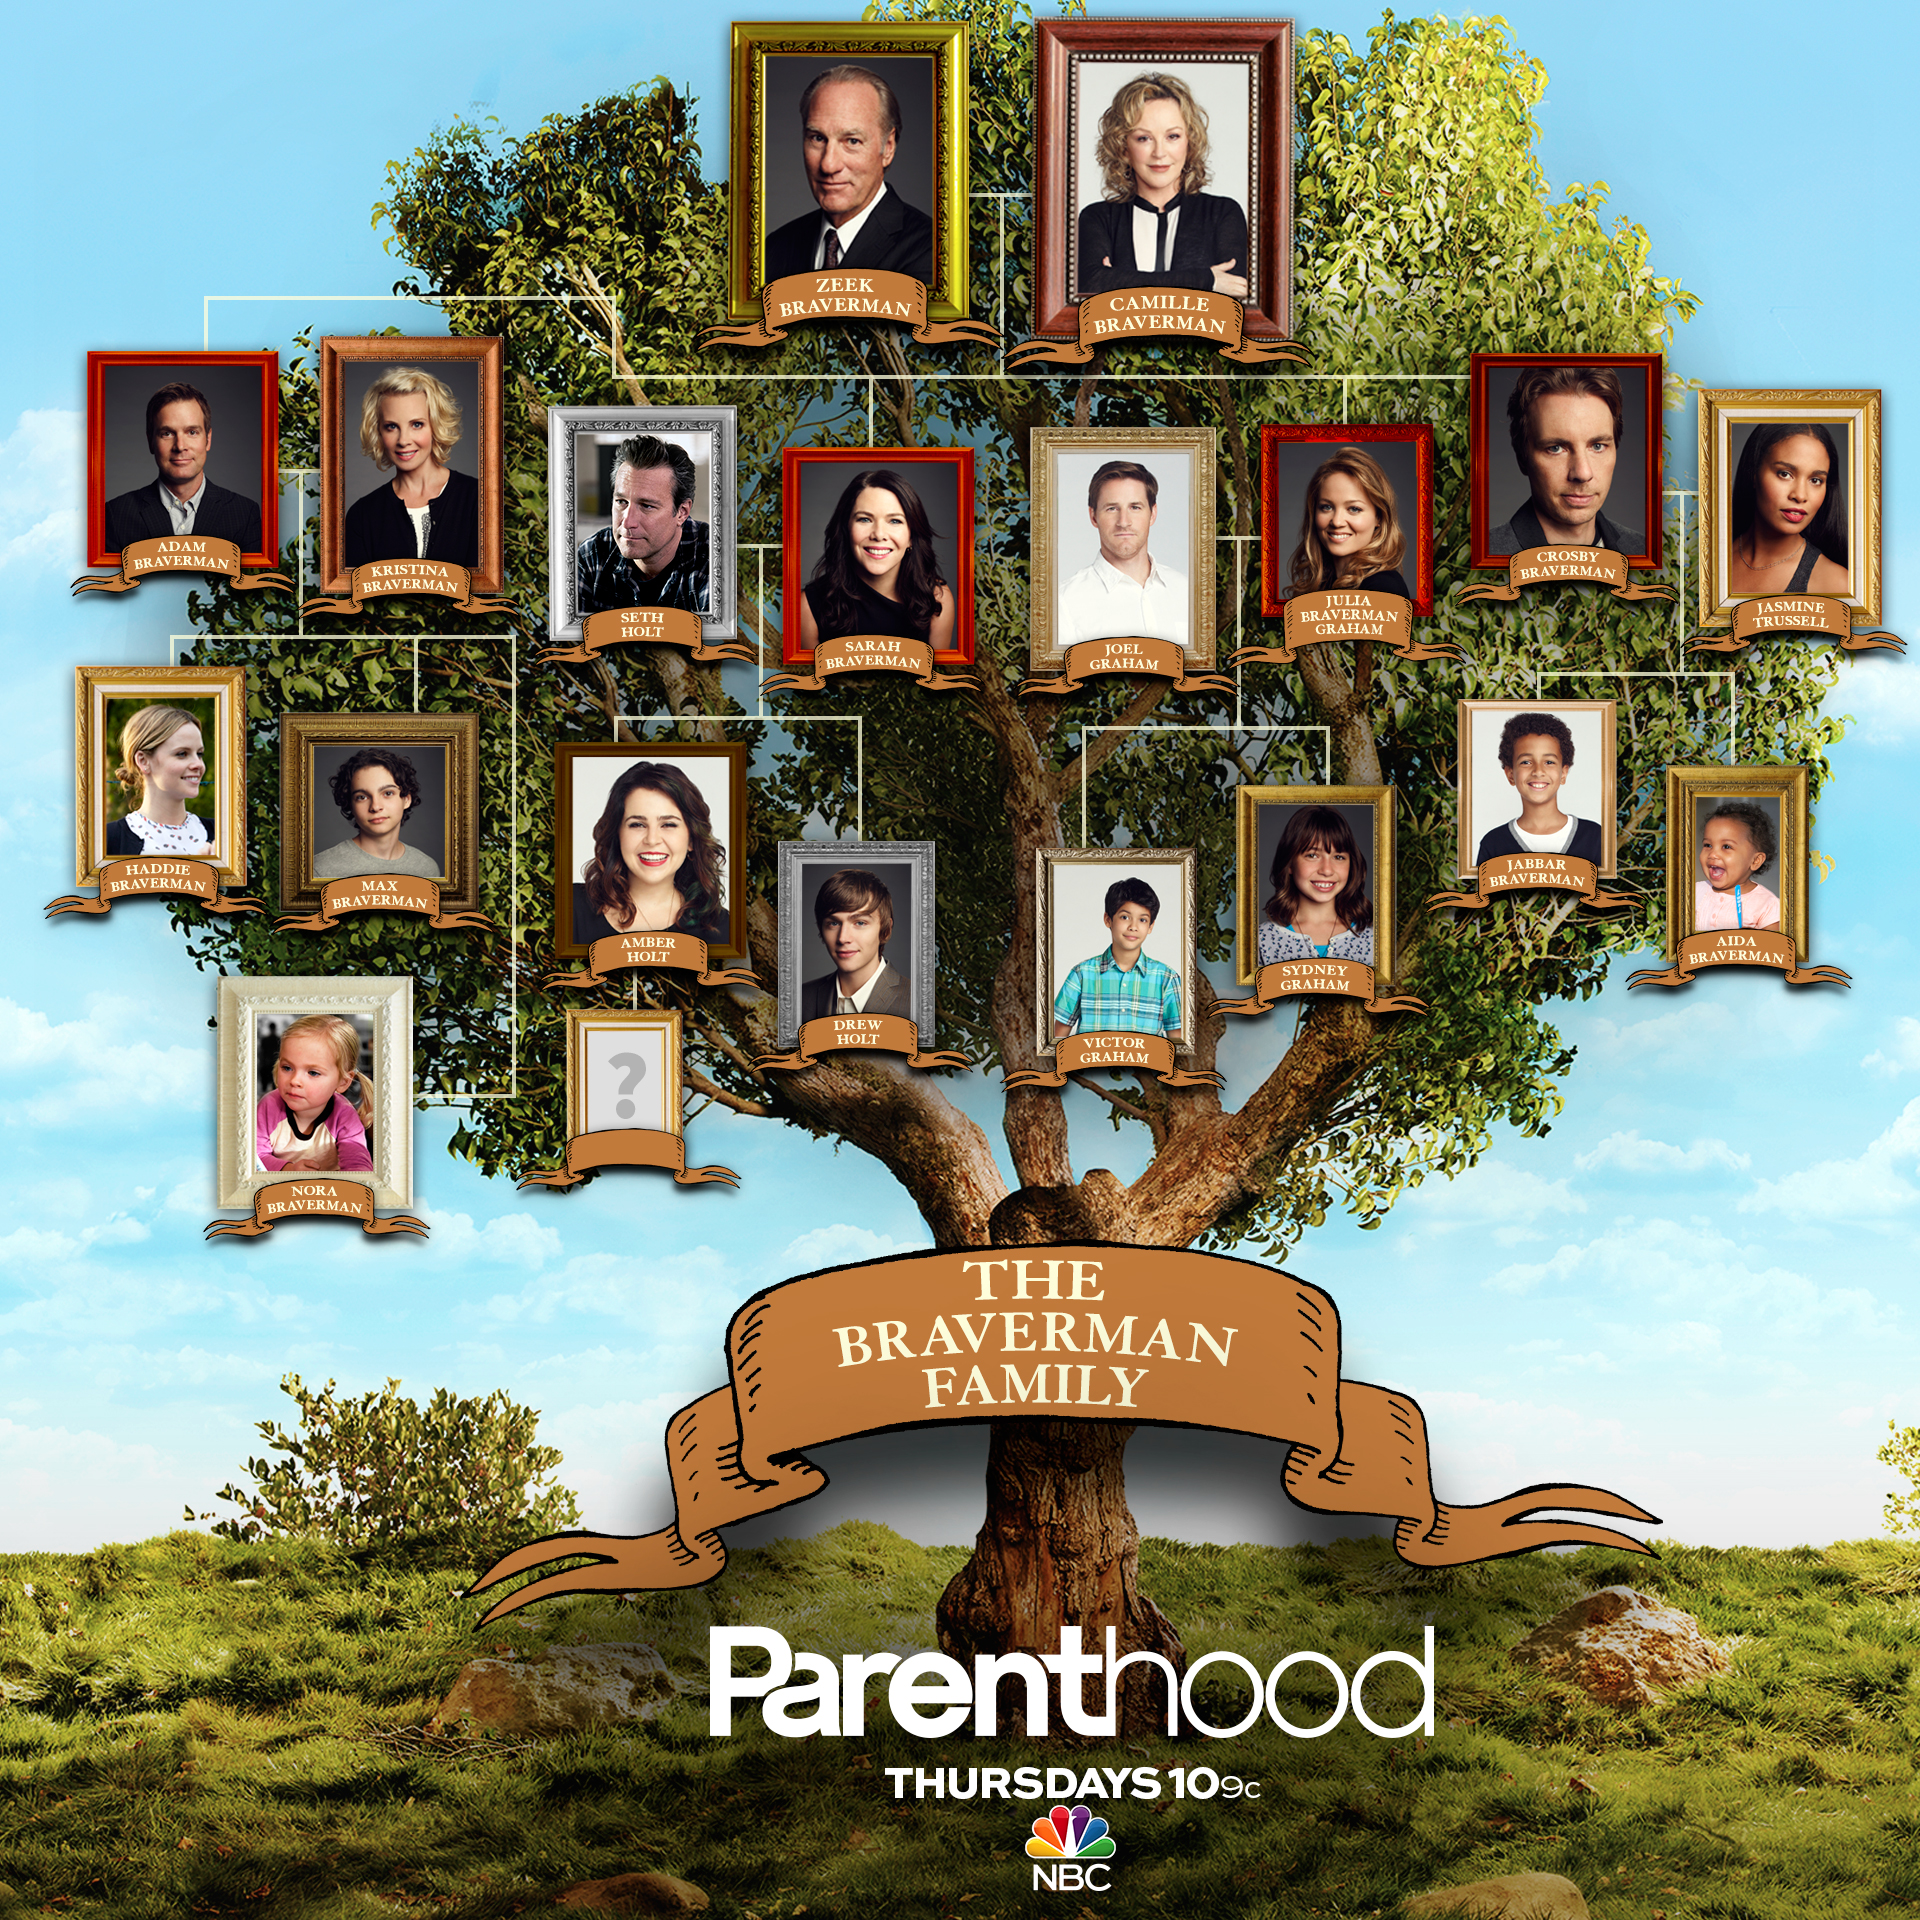 Ron Howard Interview NBC's PARENTHOOD